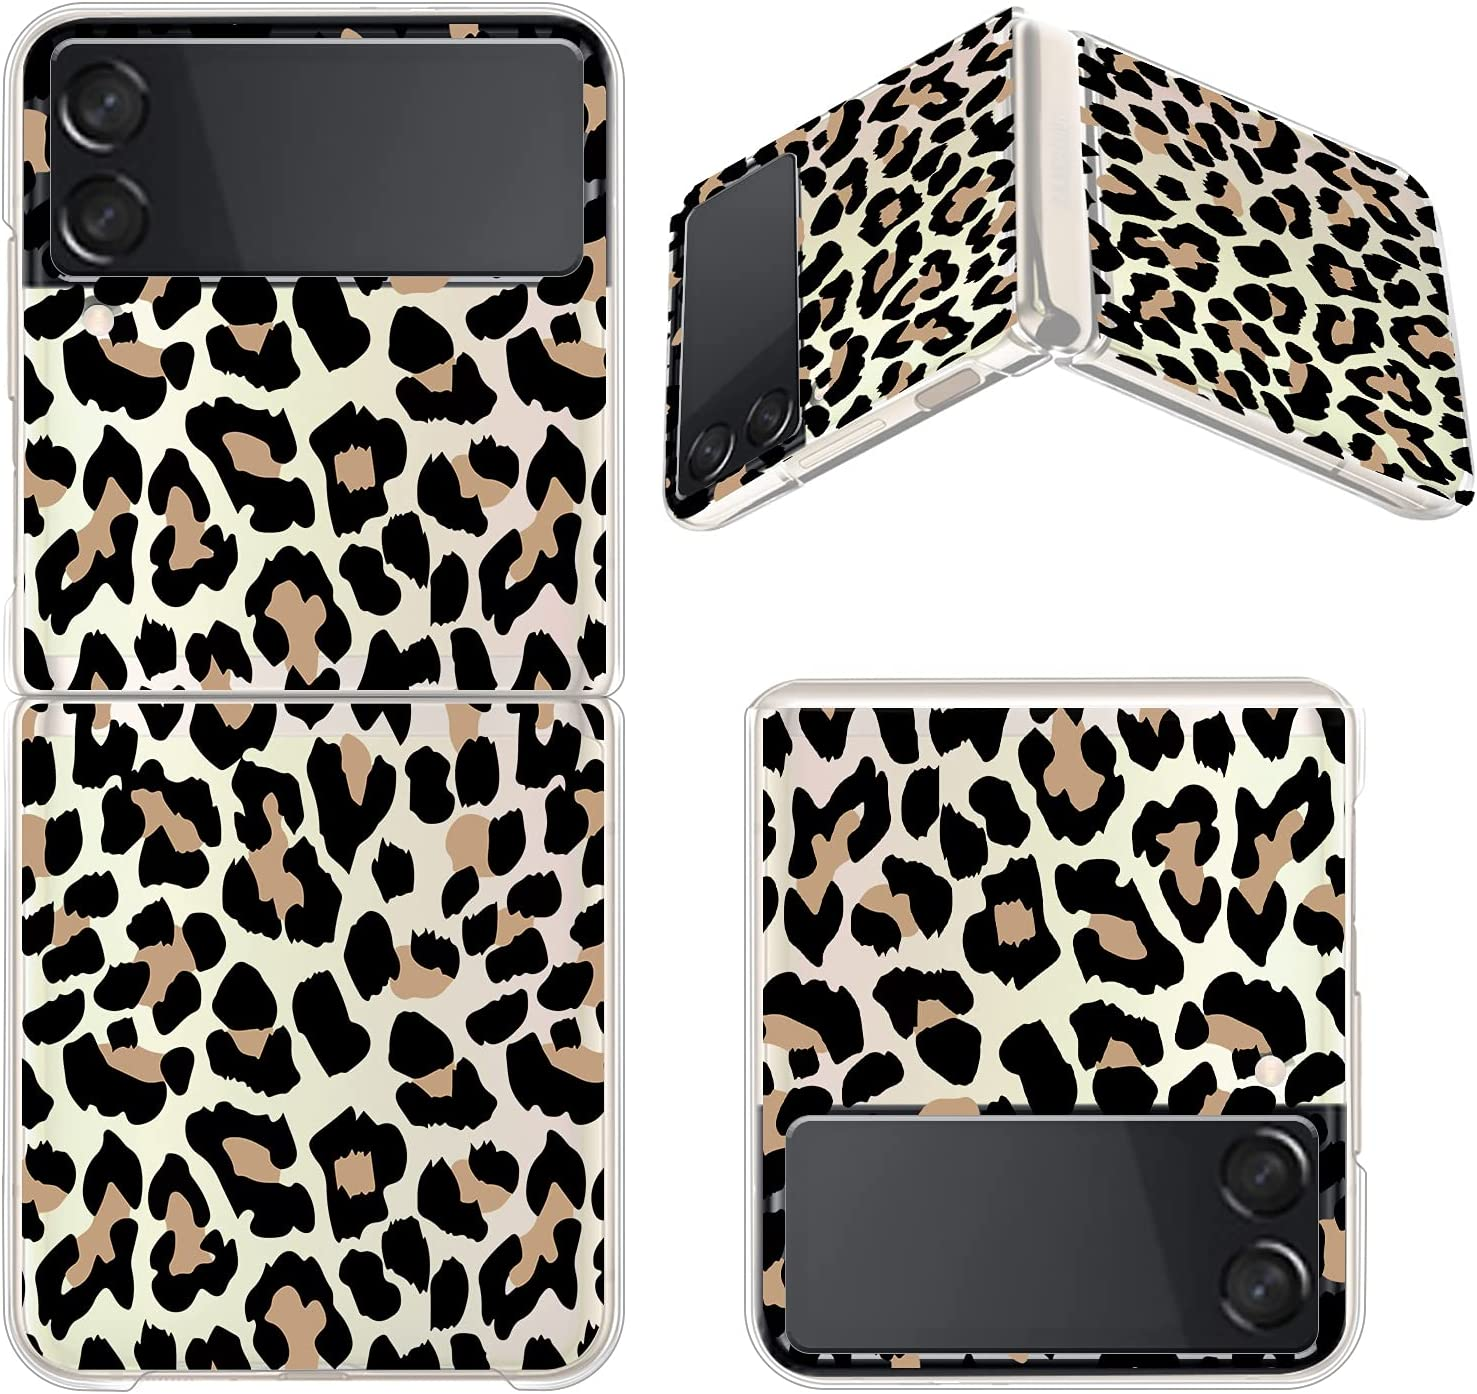 Gukalong Clear Case for Samsung Galaxy Z Flip 3 5G Full Body Shockproof Protective Hard Bumper Folding Cover Slim Thin Leopard Print Design Wireless Charging Case for Galaxy Z Flip 3 2021